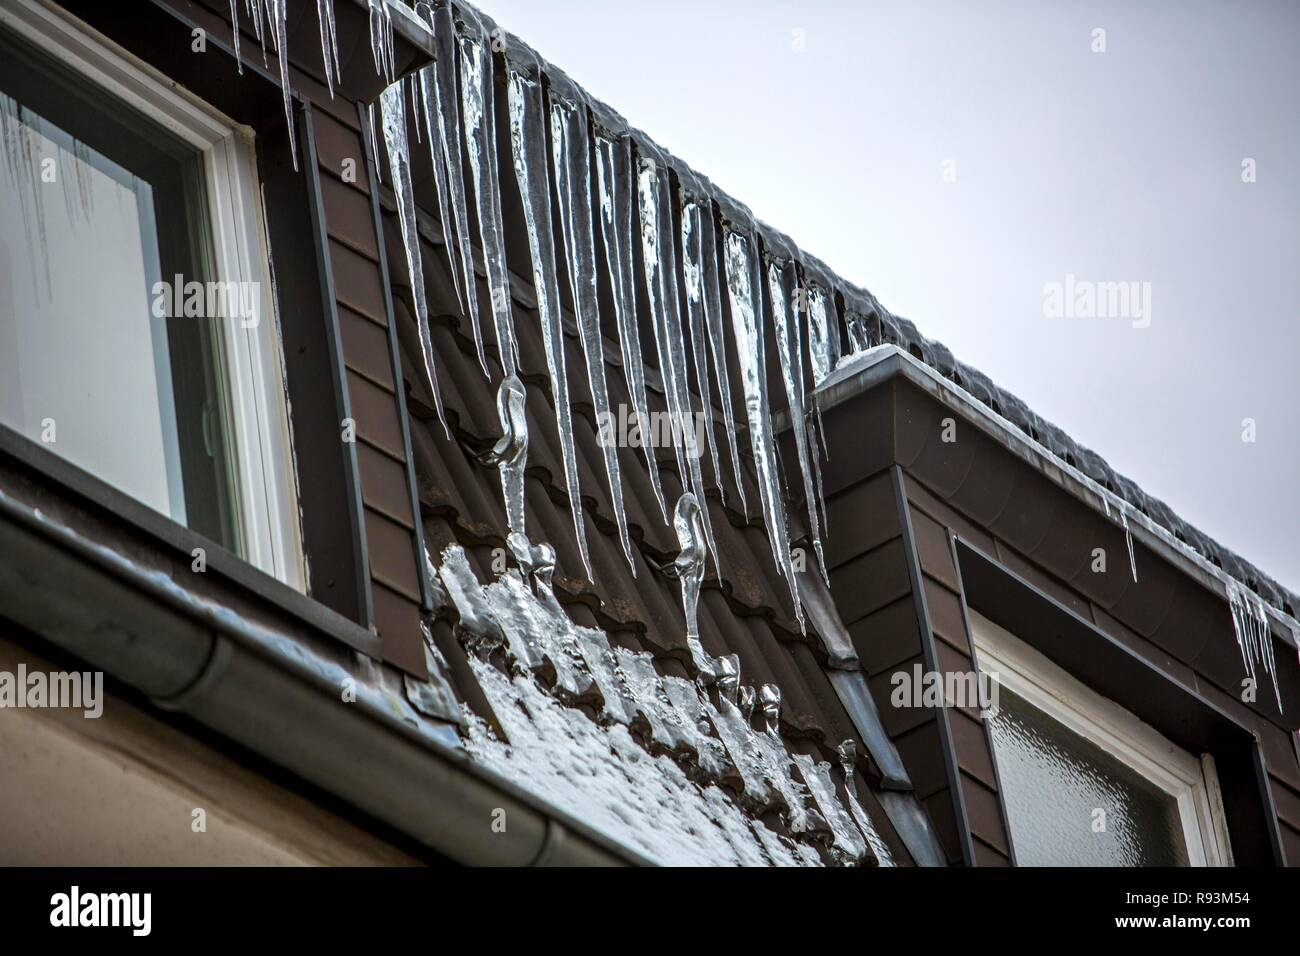 Large icicles hanging from the eaves of a house, sign of a poorly heat-insulated roof, Essen, North Rhine-Westphalia, Germany - Stock Image